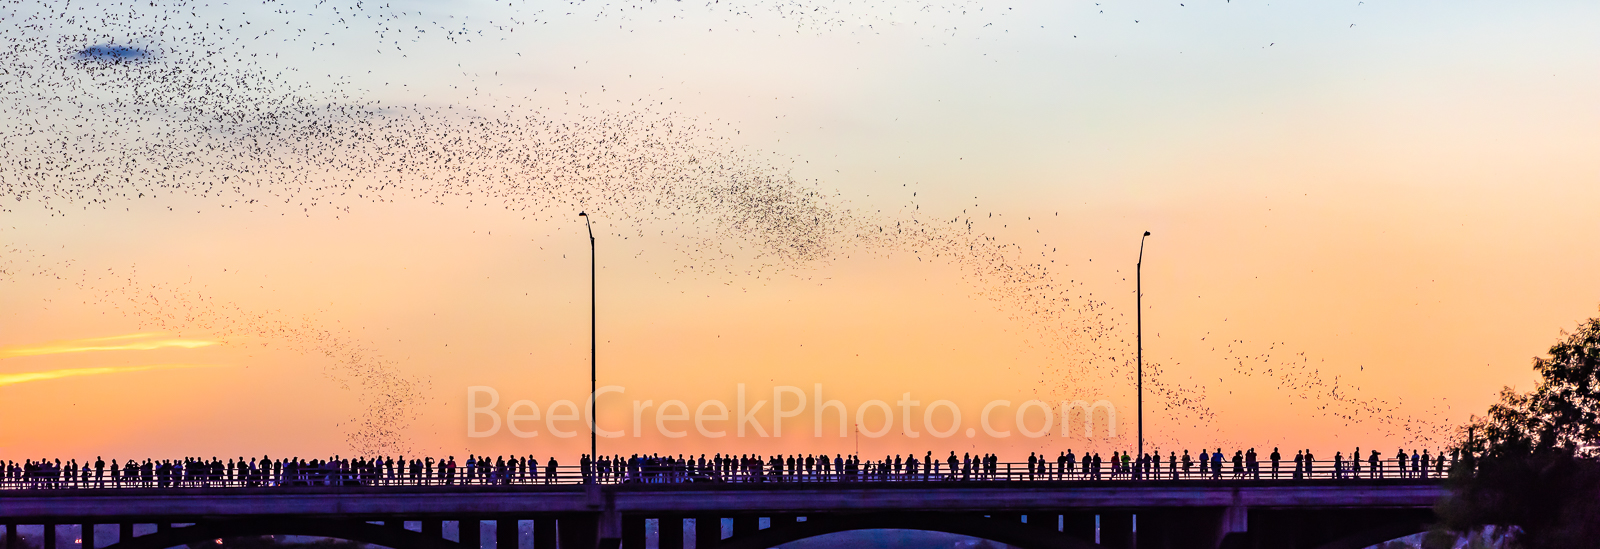 Austin Congress Bats Panorama - Austin Congress Bats as they came out over the bridge in downtown Austin. It is part of the to...